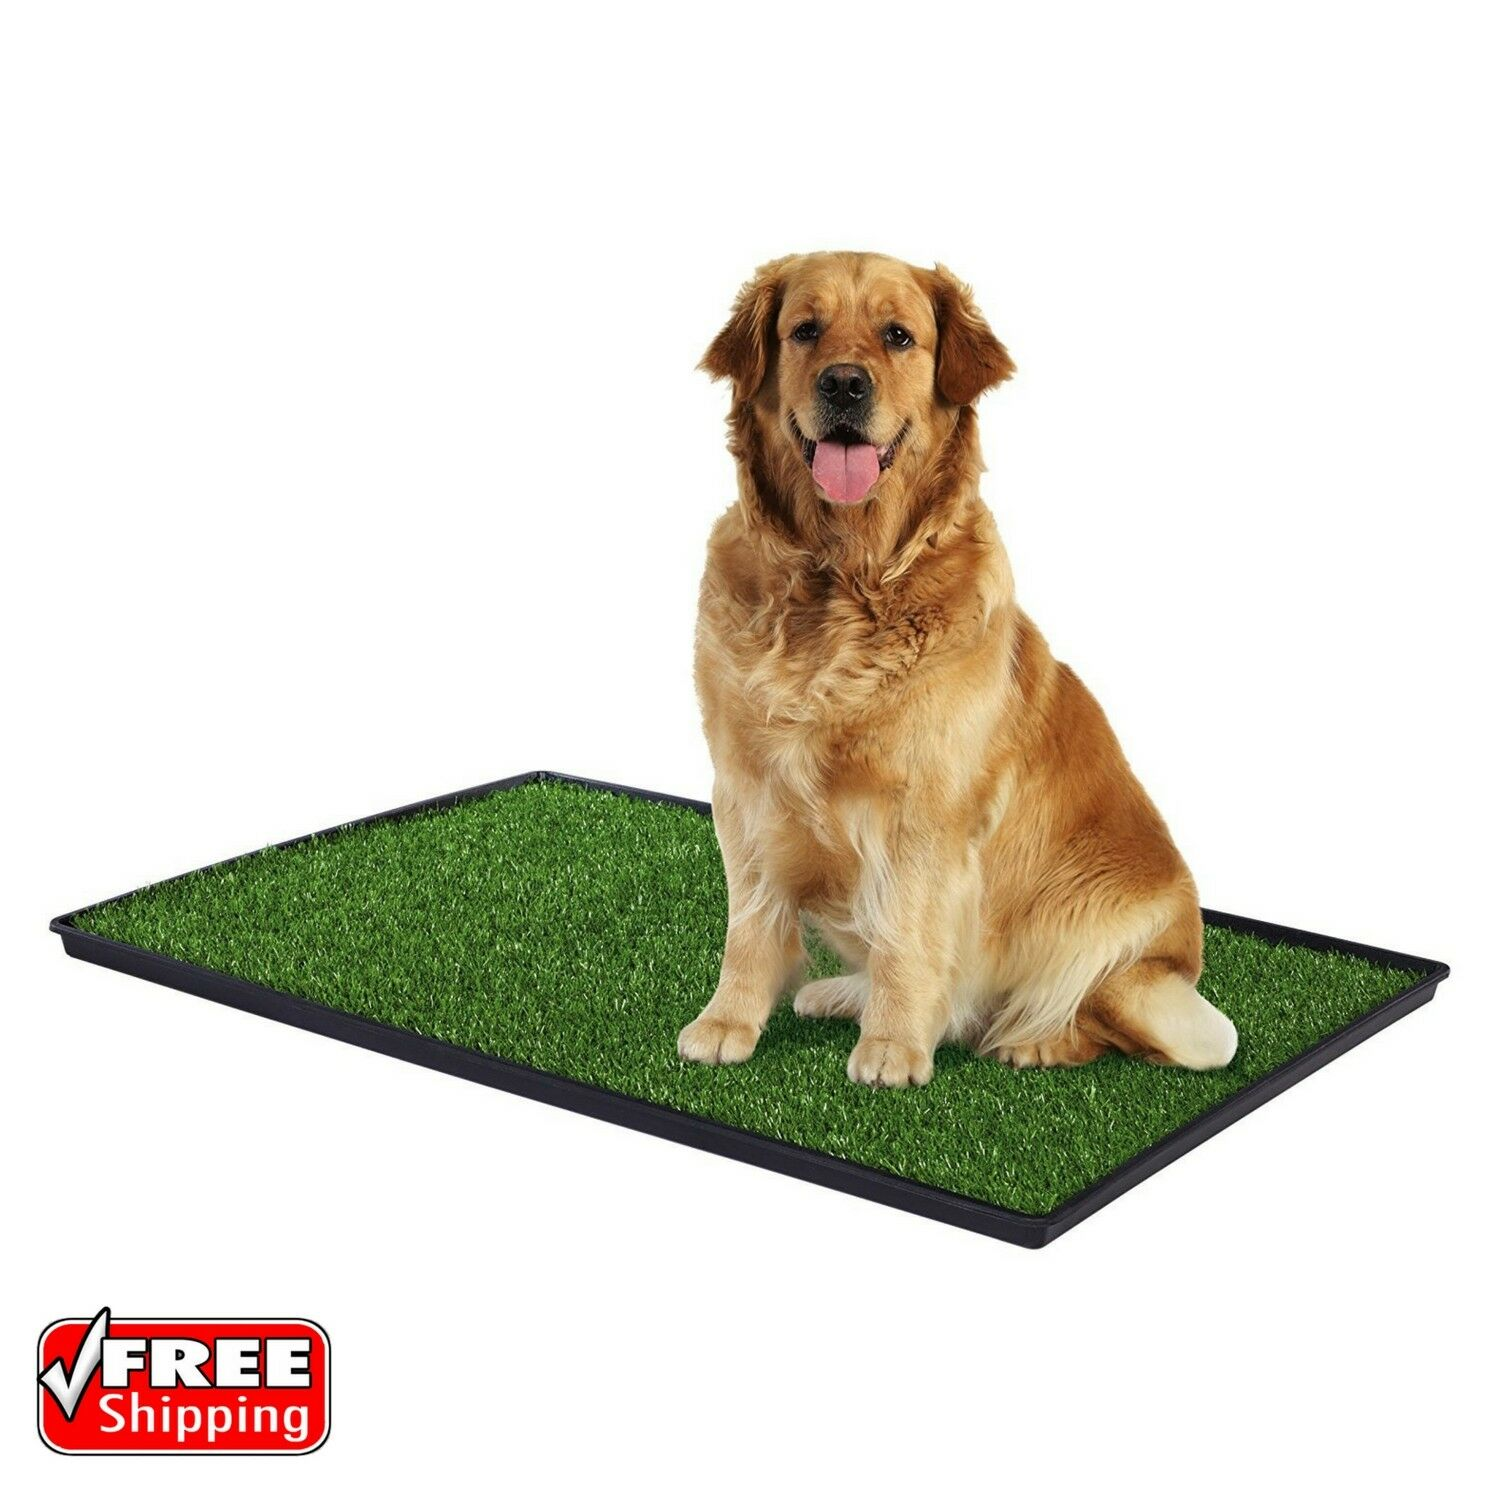 Dog Potty Training Mat Turf Grass Pee Pad Indoor Pet Patch Portable Large 41